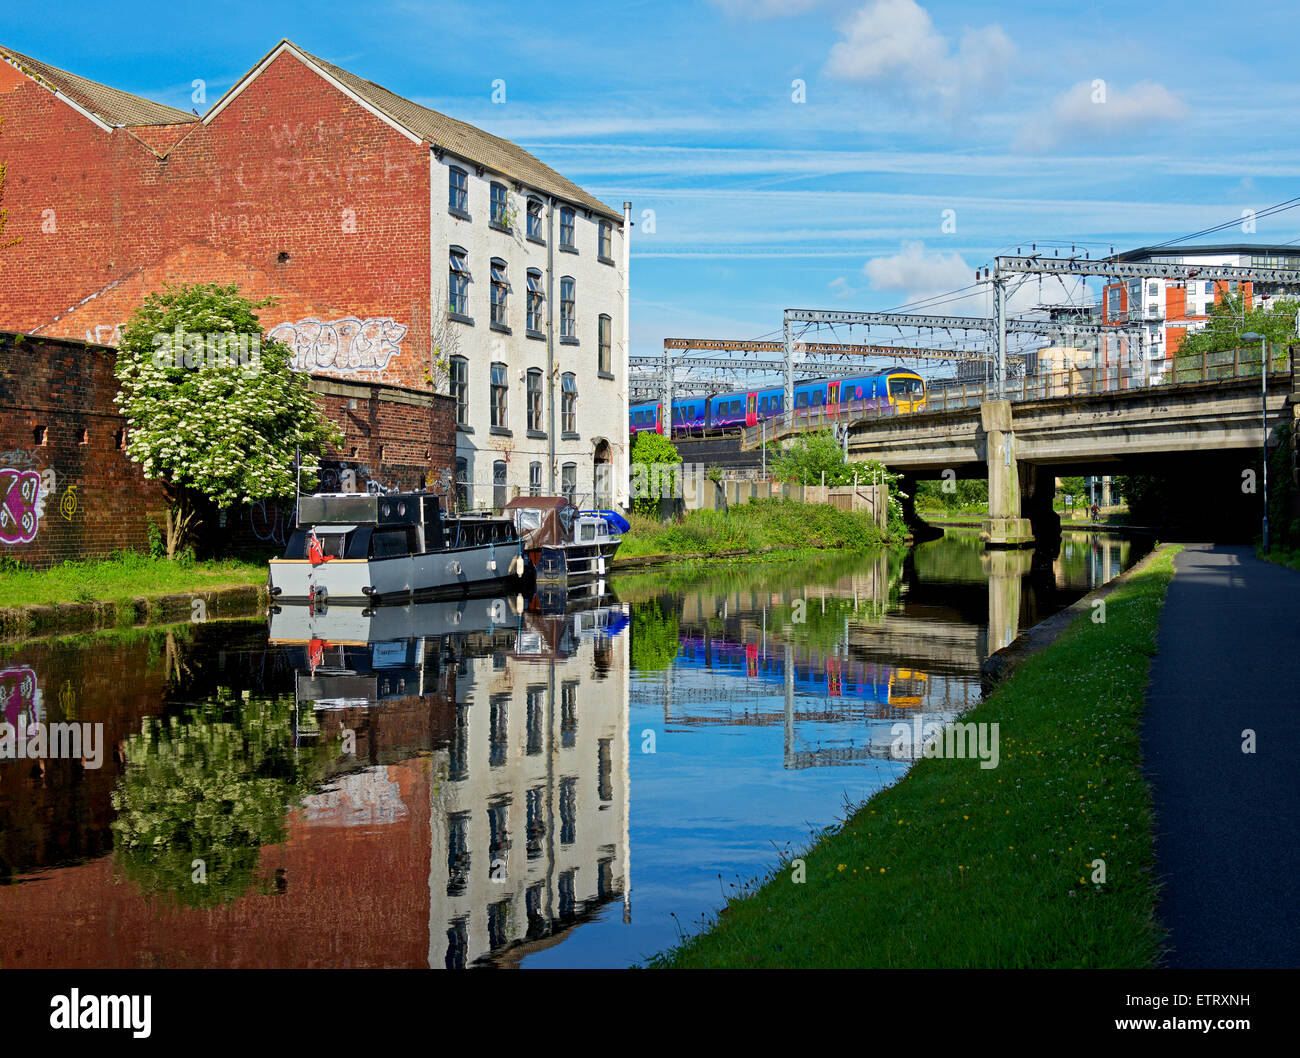 The Leeds-Liverpool Canal in the centre of Leeds, West Yorkshire, England UK - Stock Image